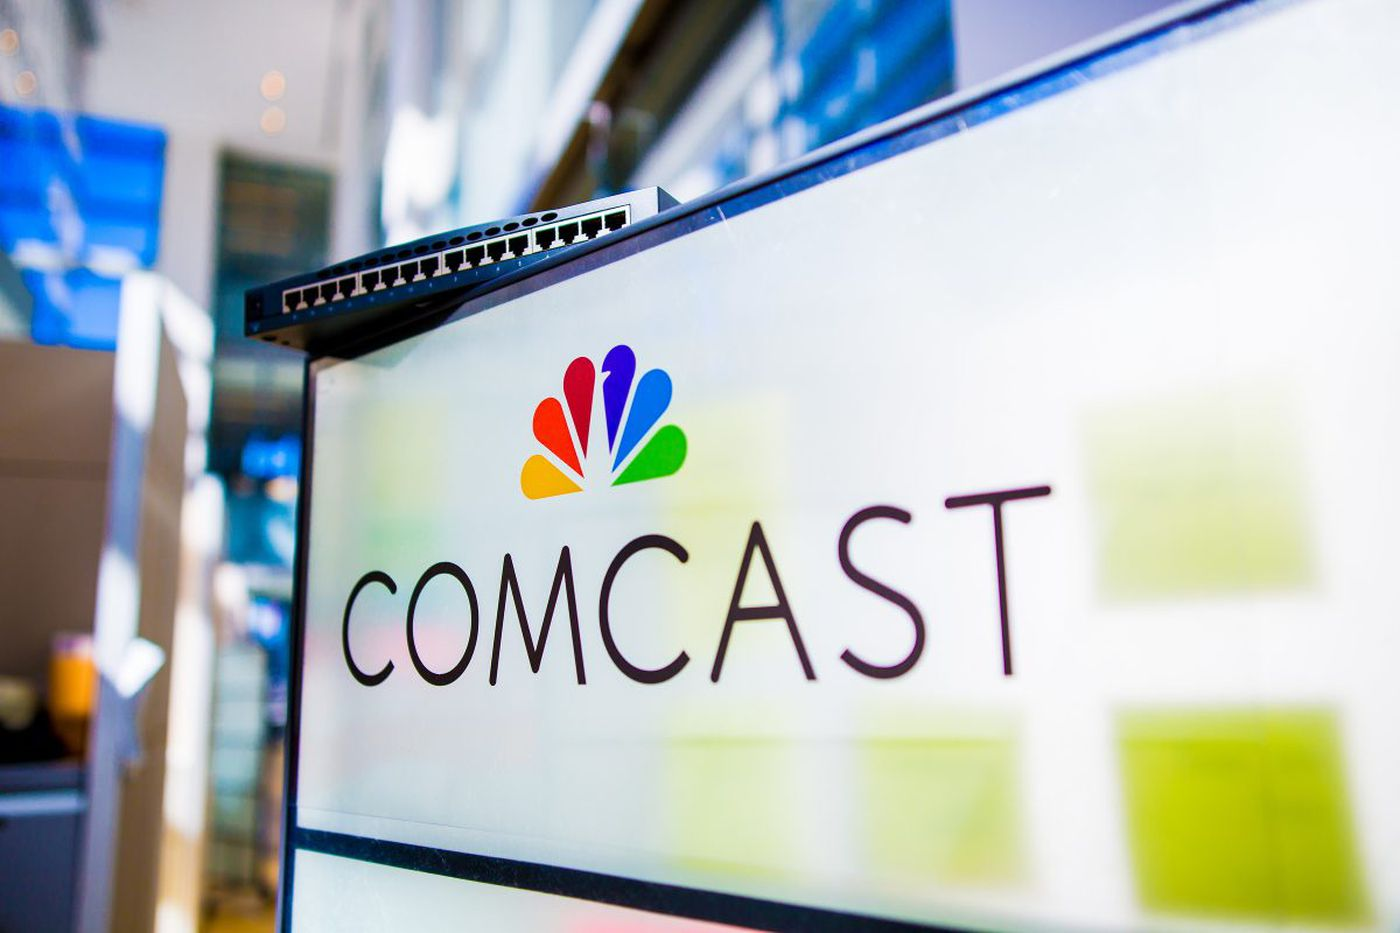 Comcast to launch gig speeds to homes in Philly area